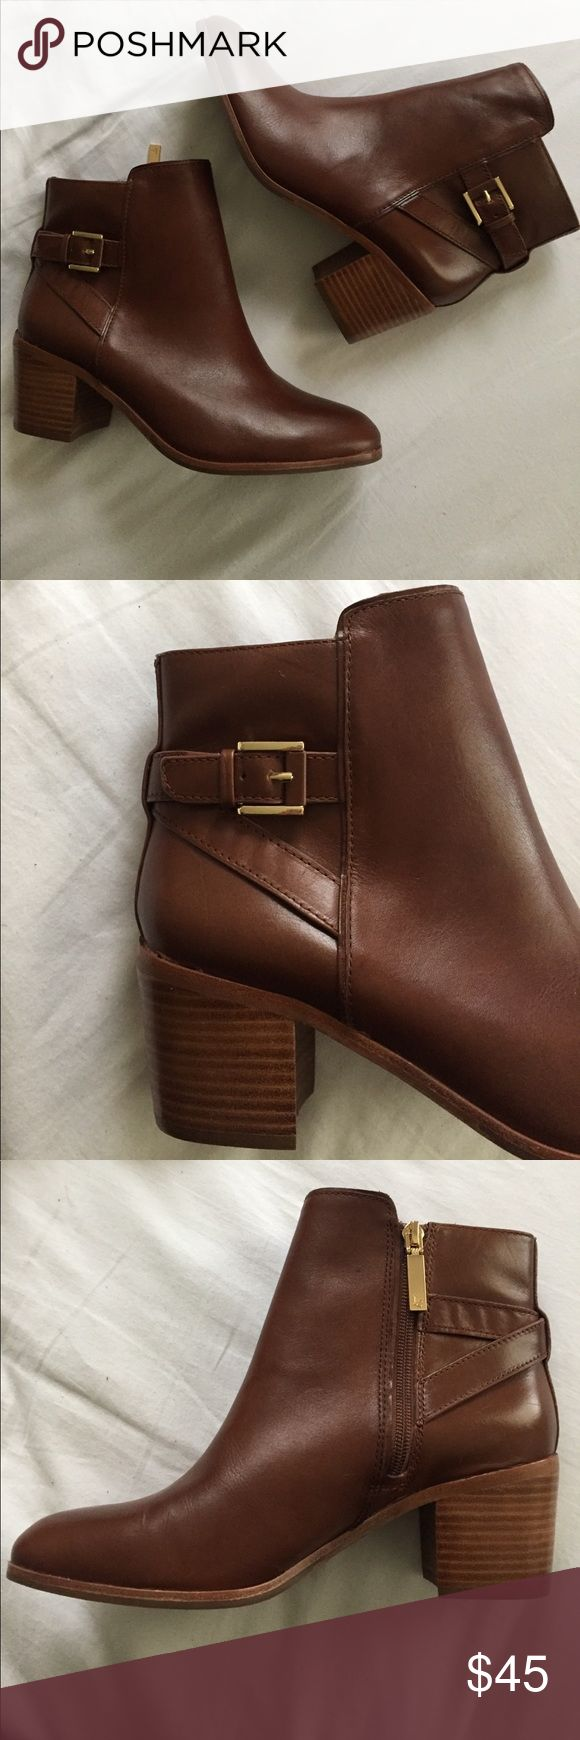 Brown leather ankle boots Louise et Cie brown leather ankle boots! Never worn!!! louise et cie Shoes Ankle Boots & Booties